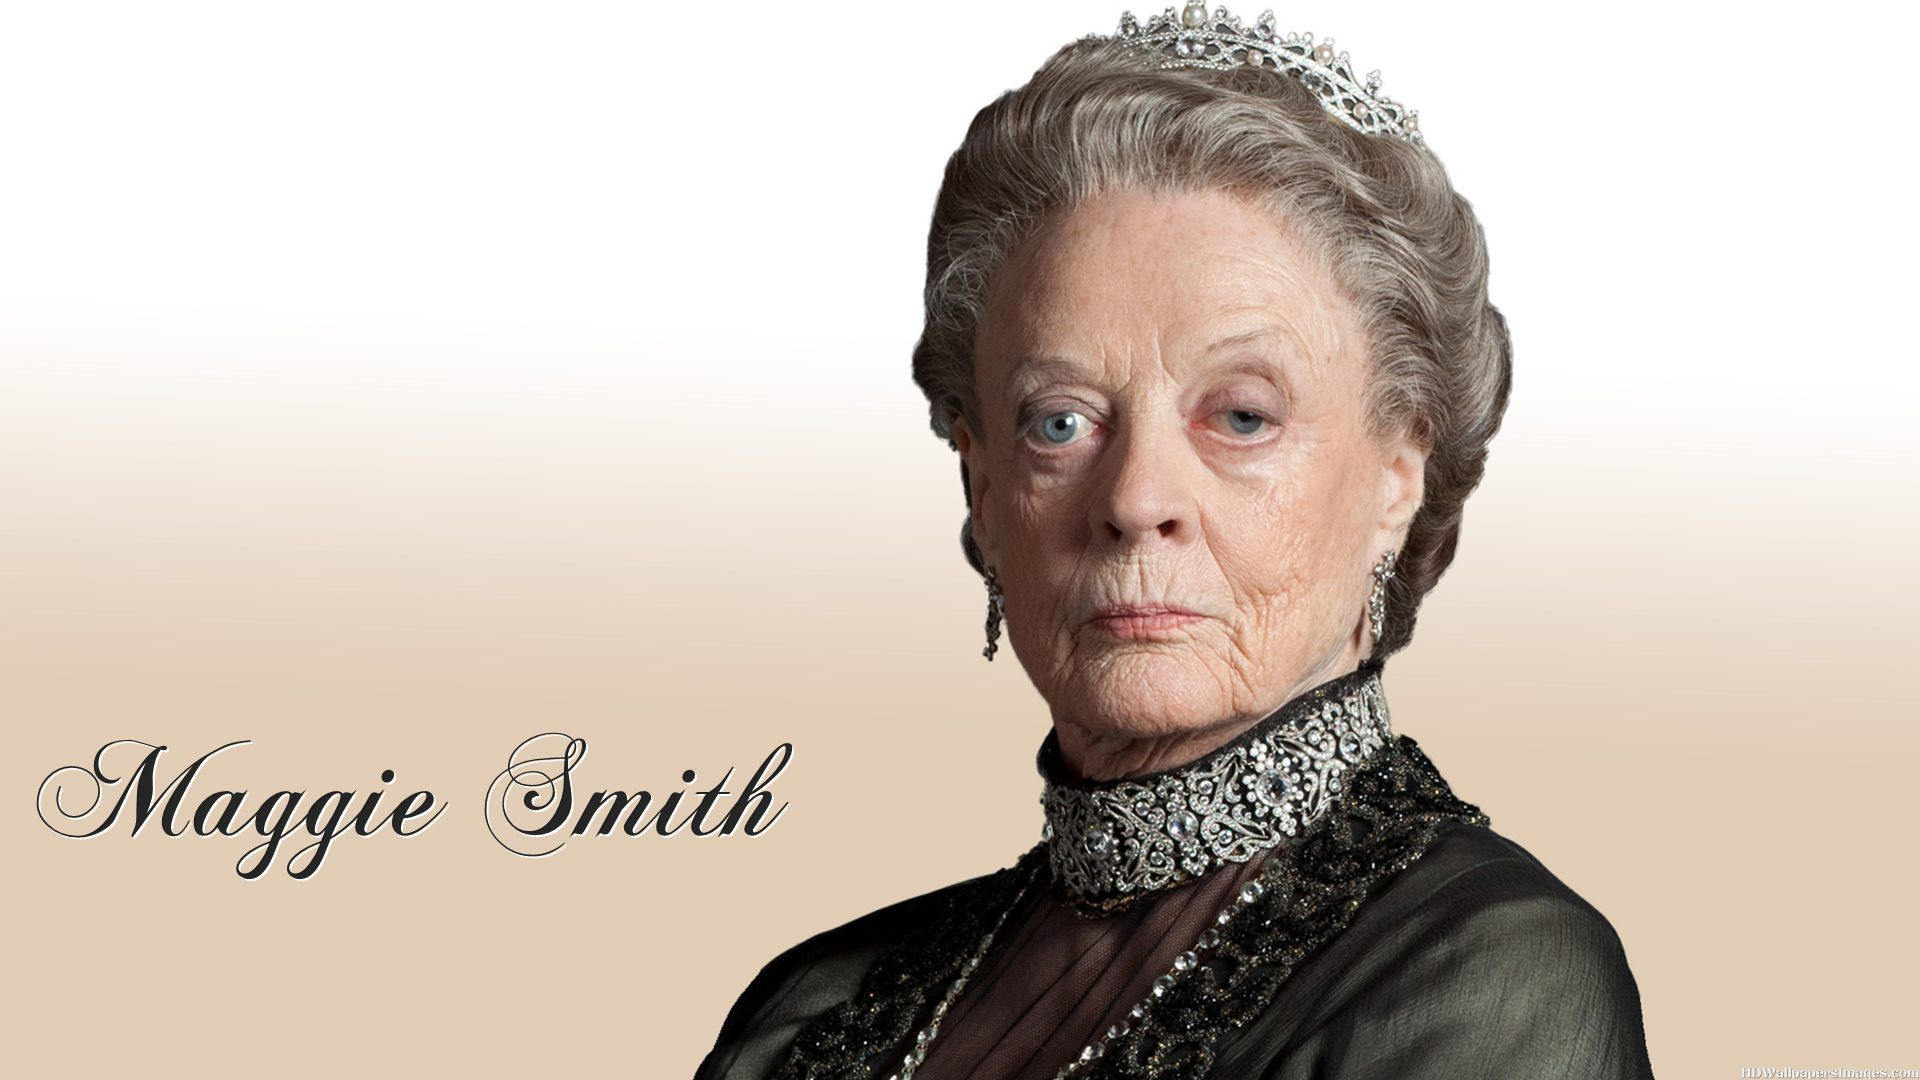 Maggie Smith 2014 Images